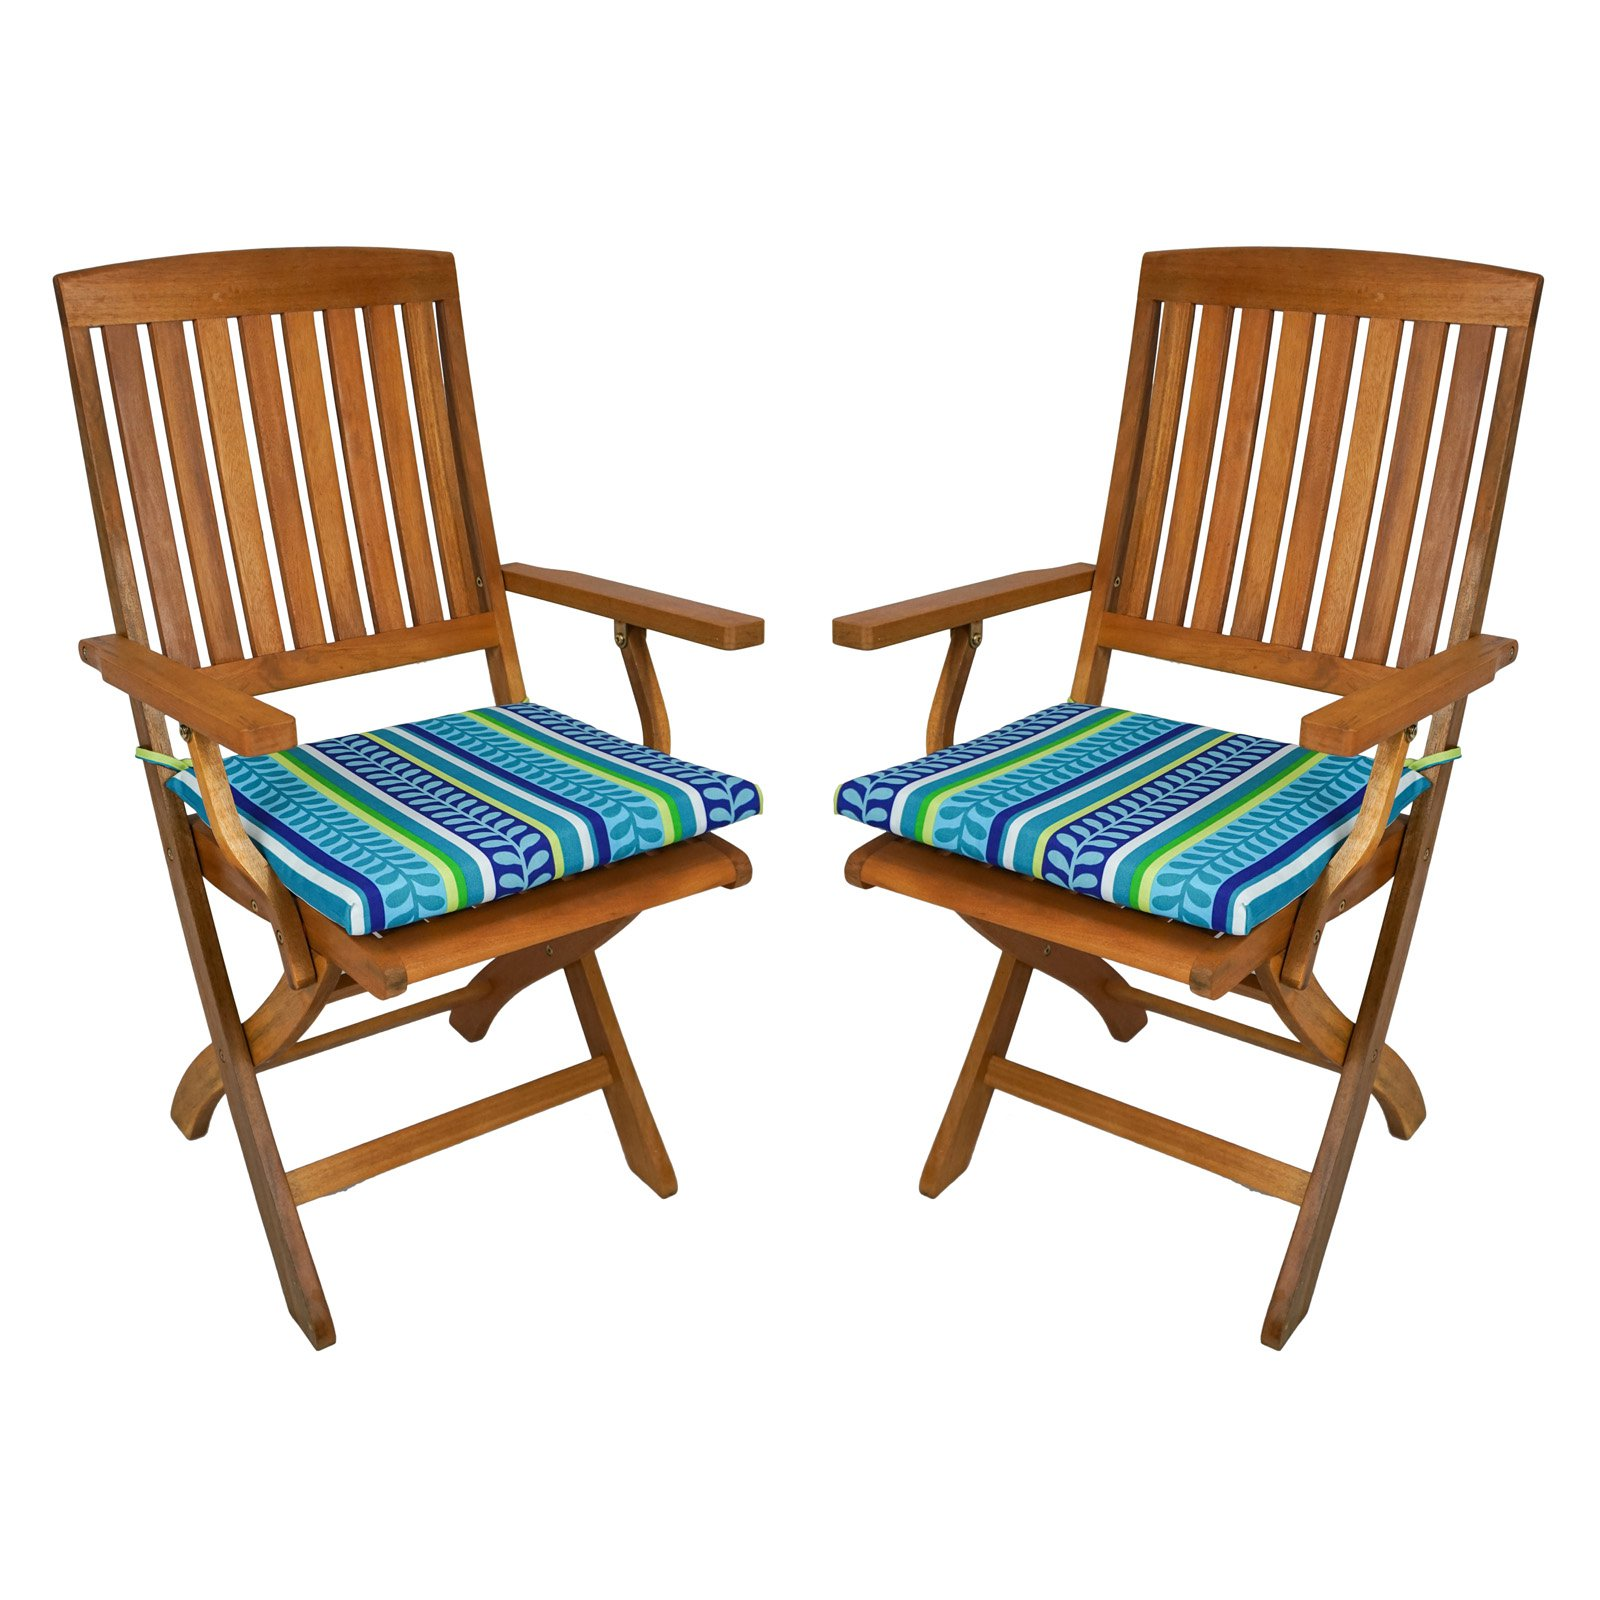 folding chair with cushion stool bar blazing needles outdoor 17 5 x 15 in set of 2